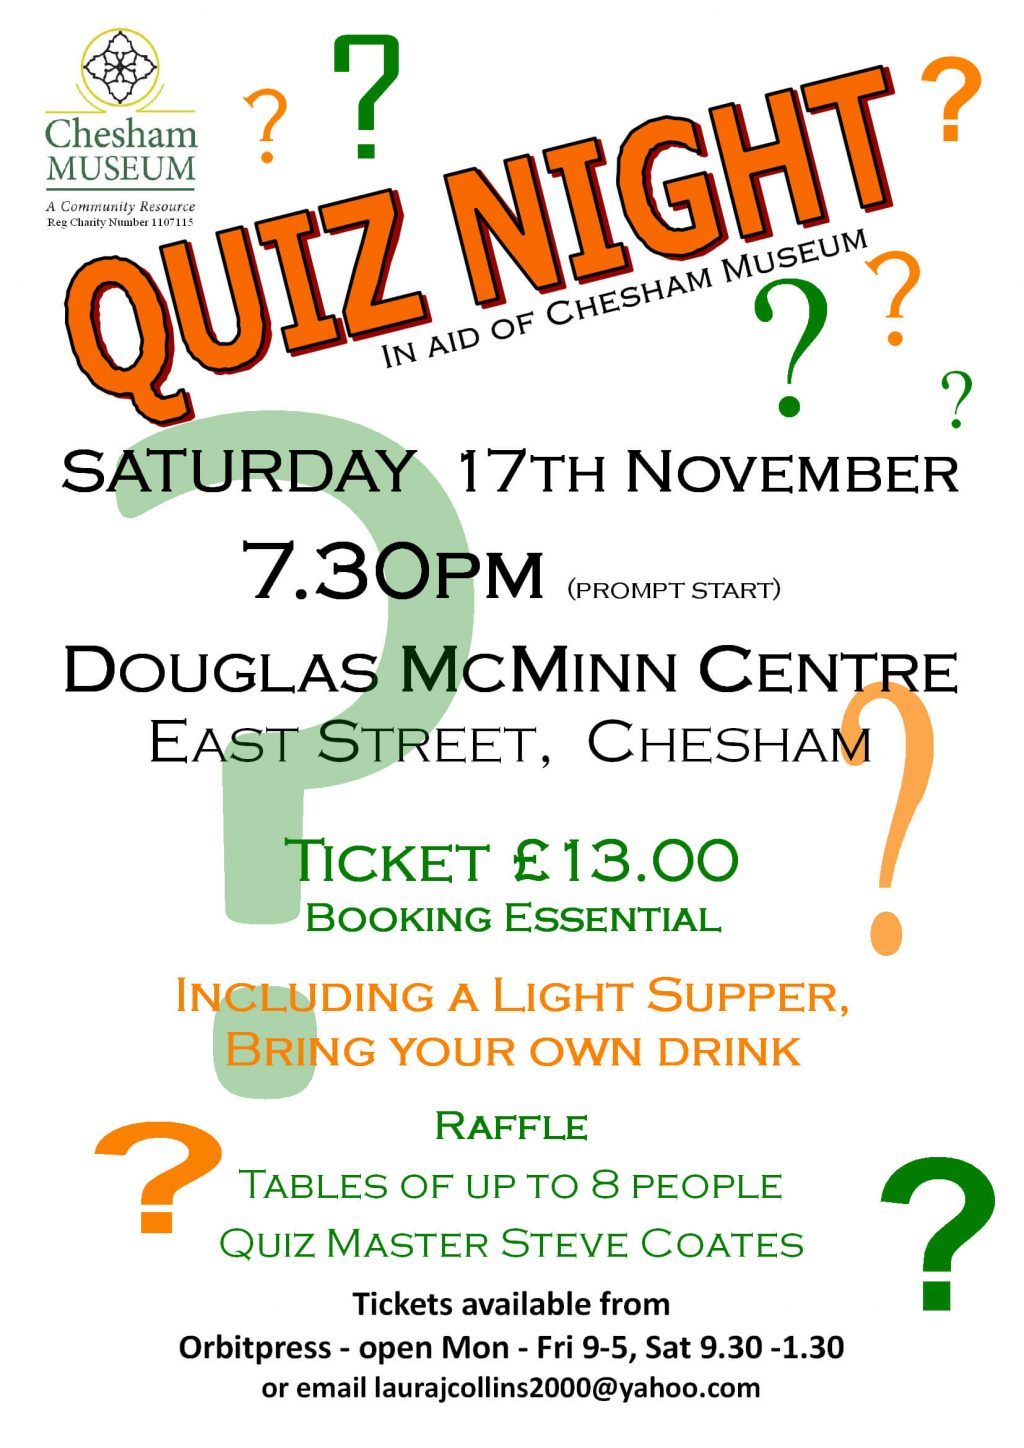 Chesham museum quiz night 17 November 7.30pm tickets cost £13